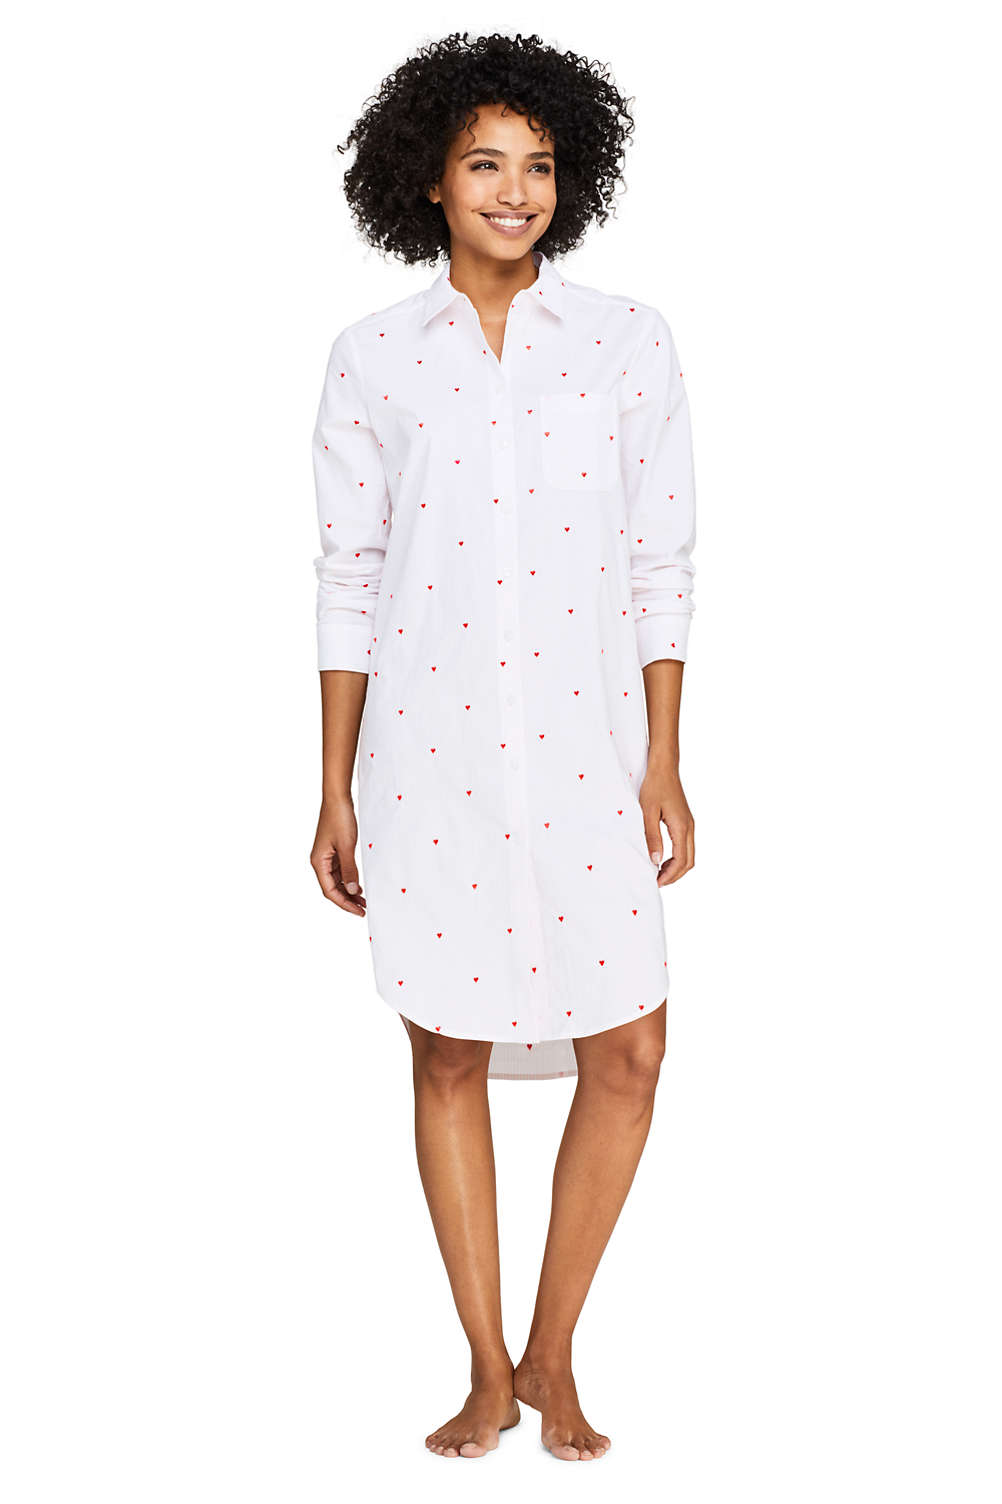 5c93d12621 Women s Embroidered Cotton Pajama Nightshirt from Lands  End